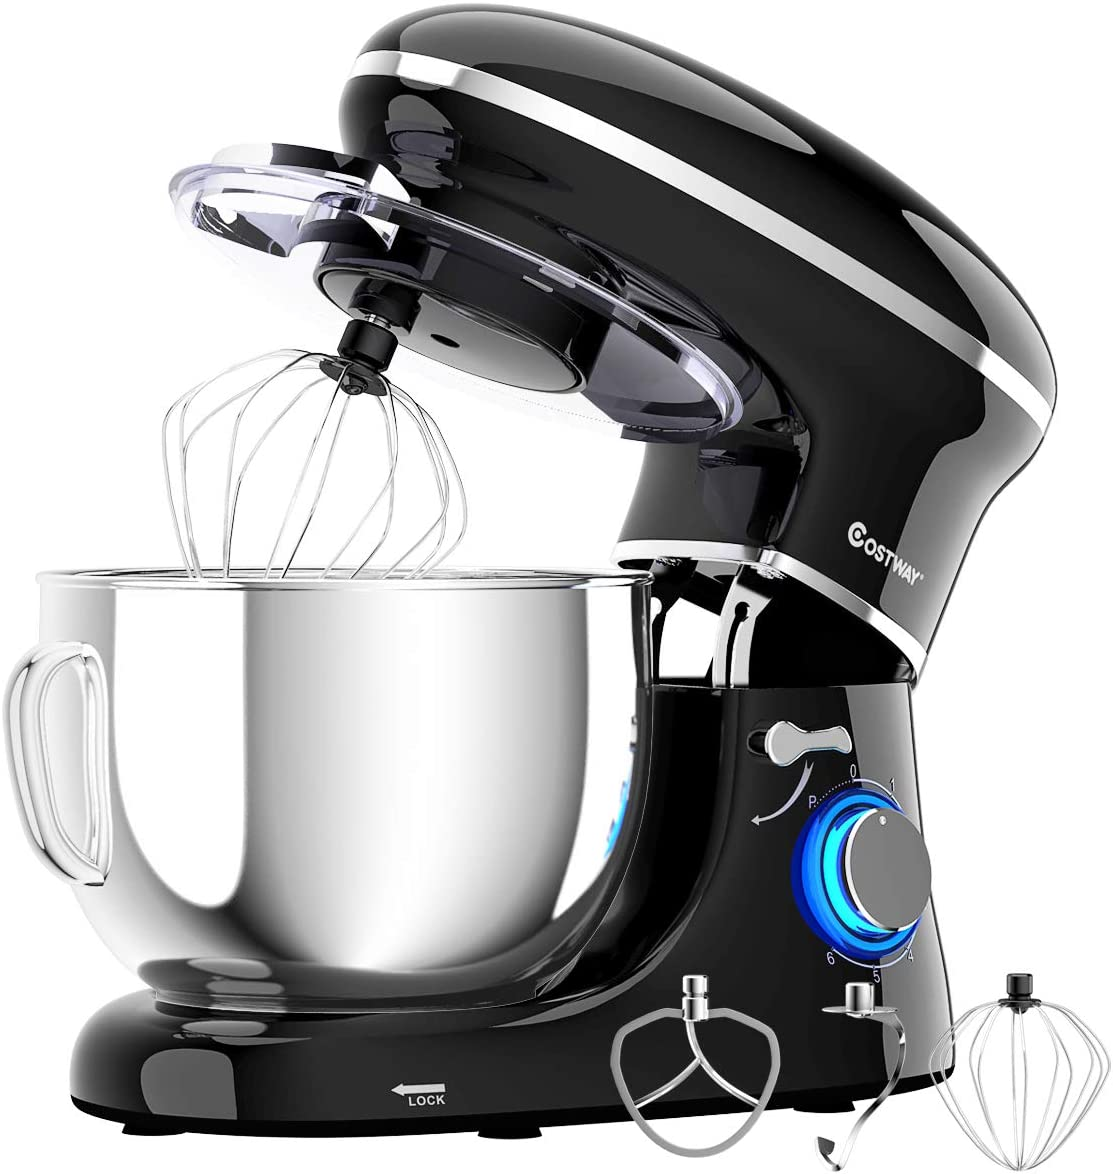 COSTWAY Stand Mixer, 660W Electric Kitchen Food Mixer with 6-Speed Control, 6.3-Quart Stainless Steel Bowl, Dough Hook, Beater, Whisk (Black-update)